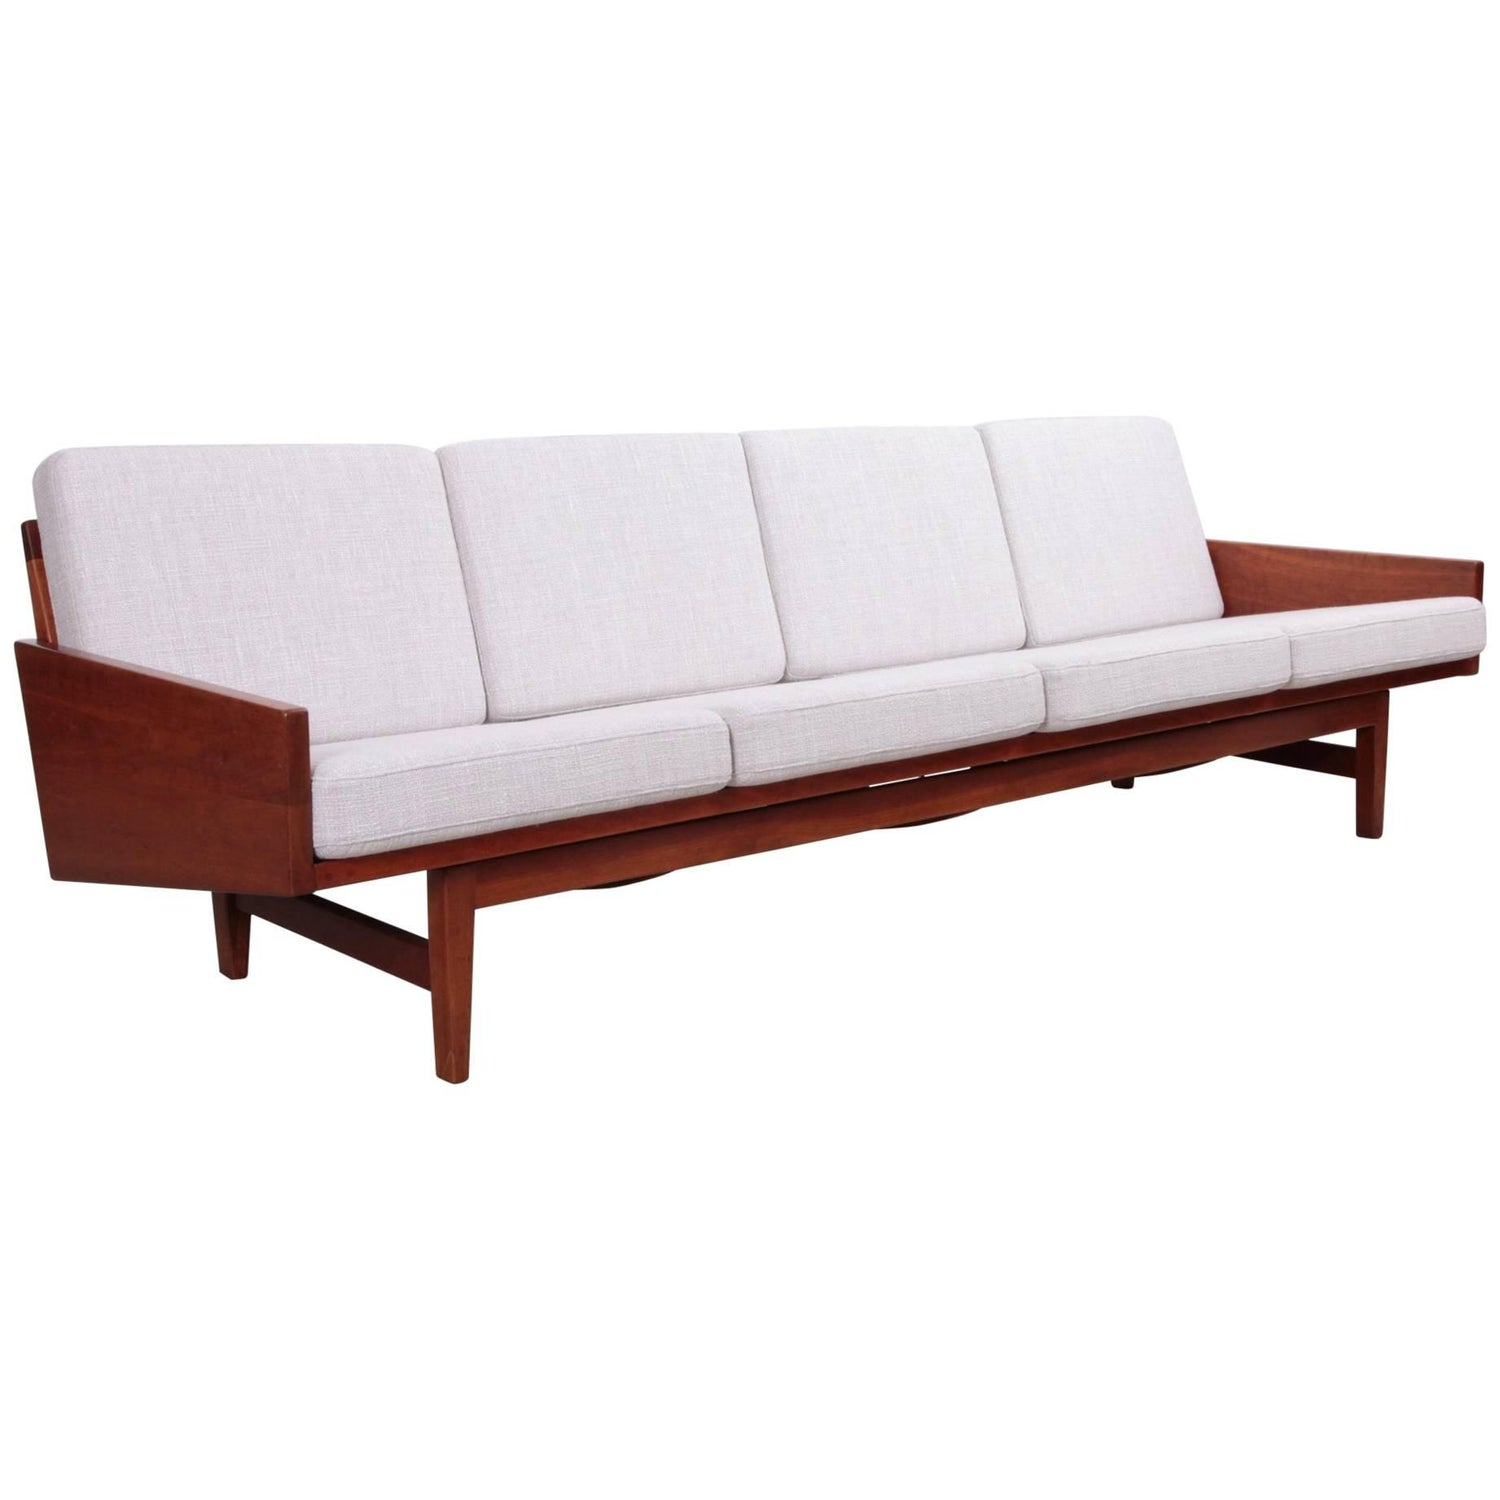 Arden Riddle Furniture: Chairs, Sofas, Tables & More - 5 For Sale at ...